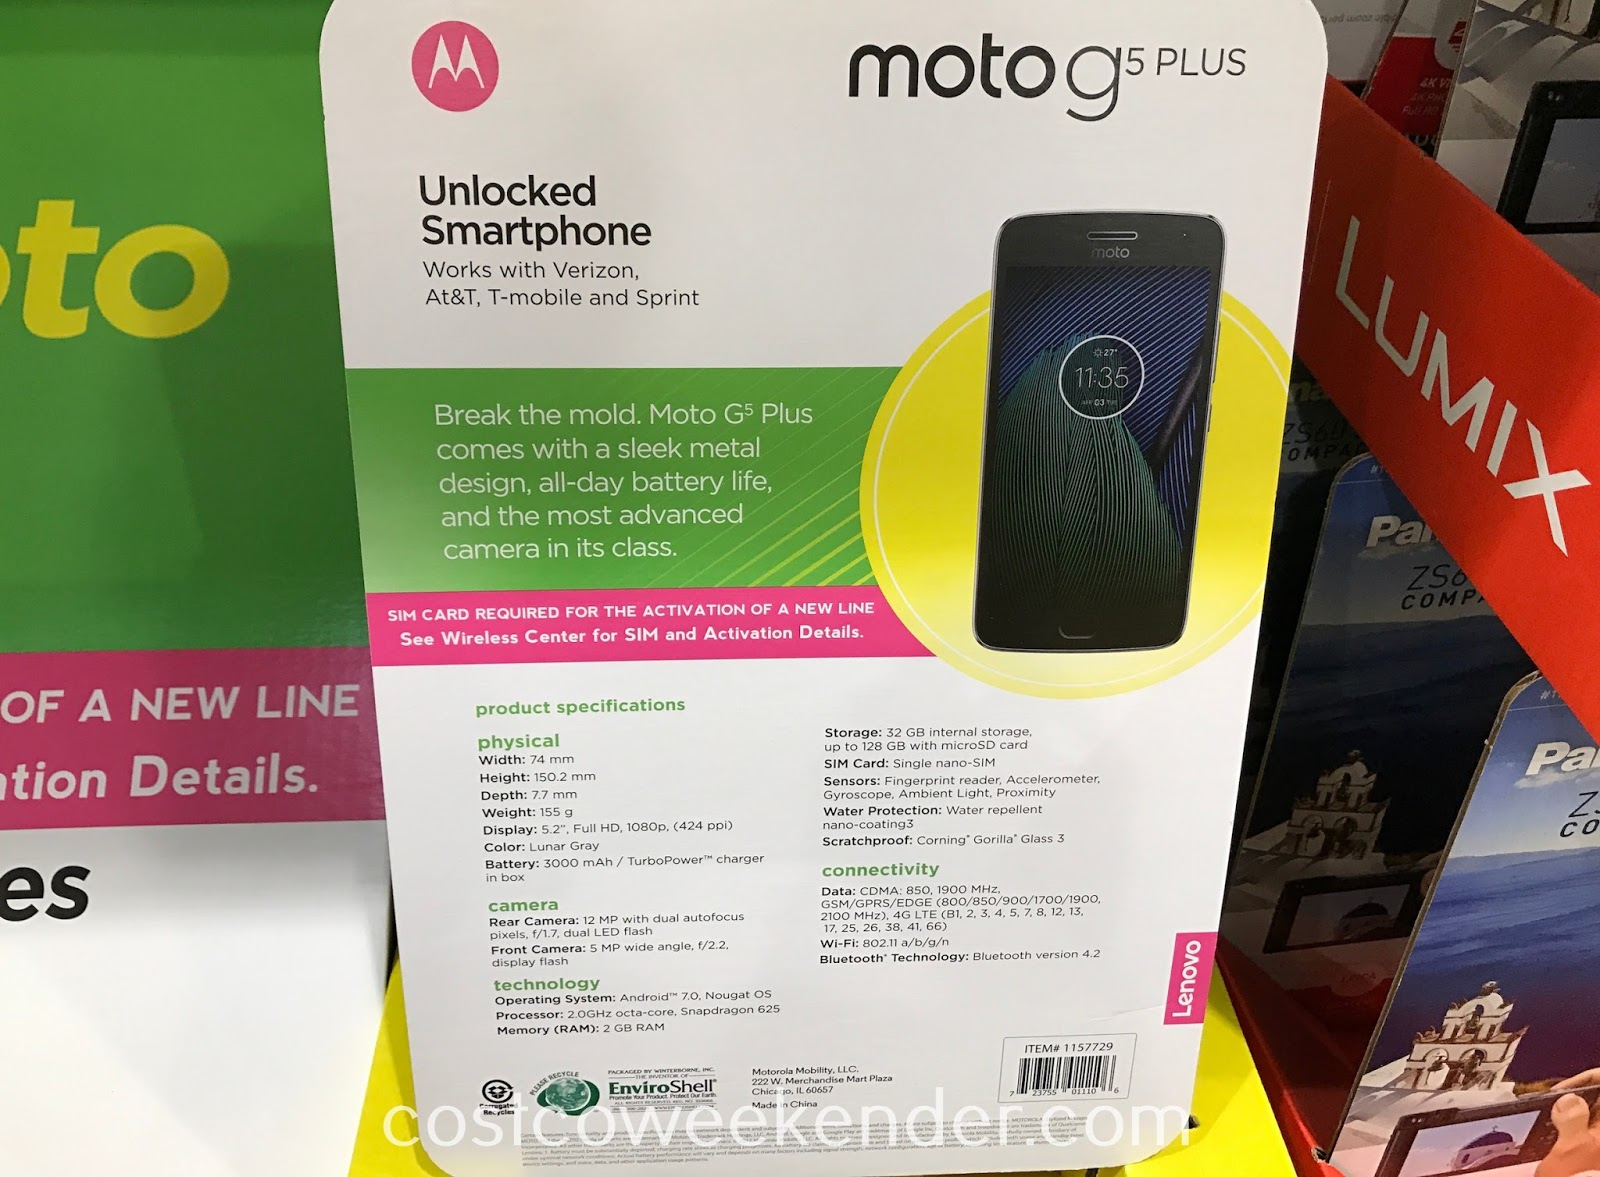 Costco 1157729 - Moto G5 Plus: practical and not as costly as the iPhone